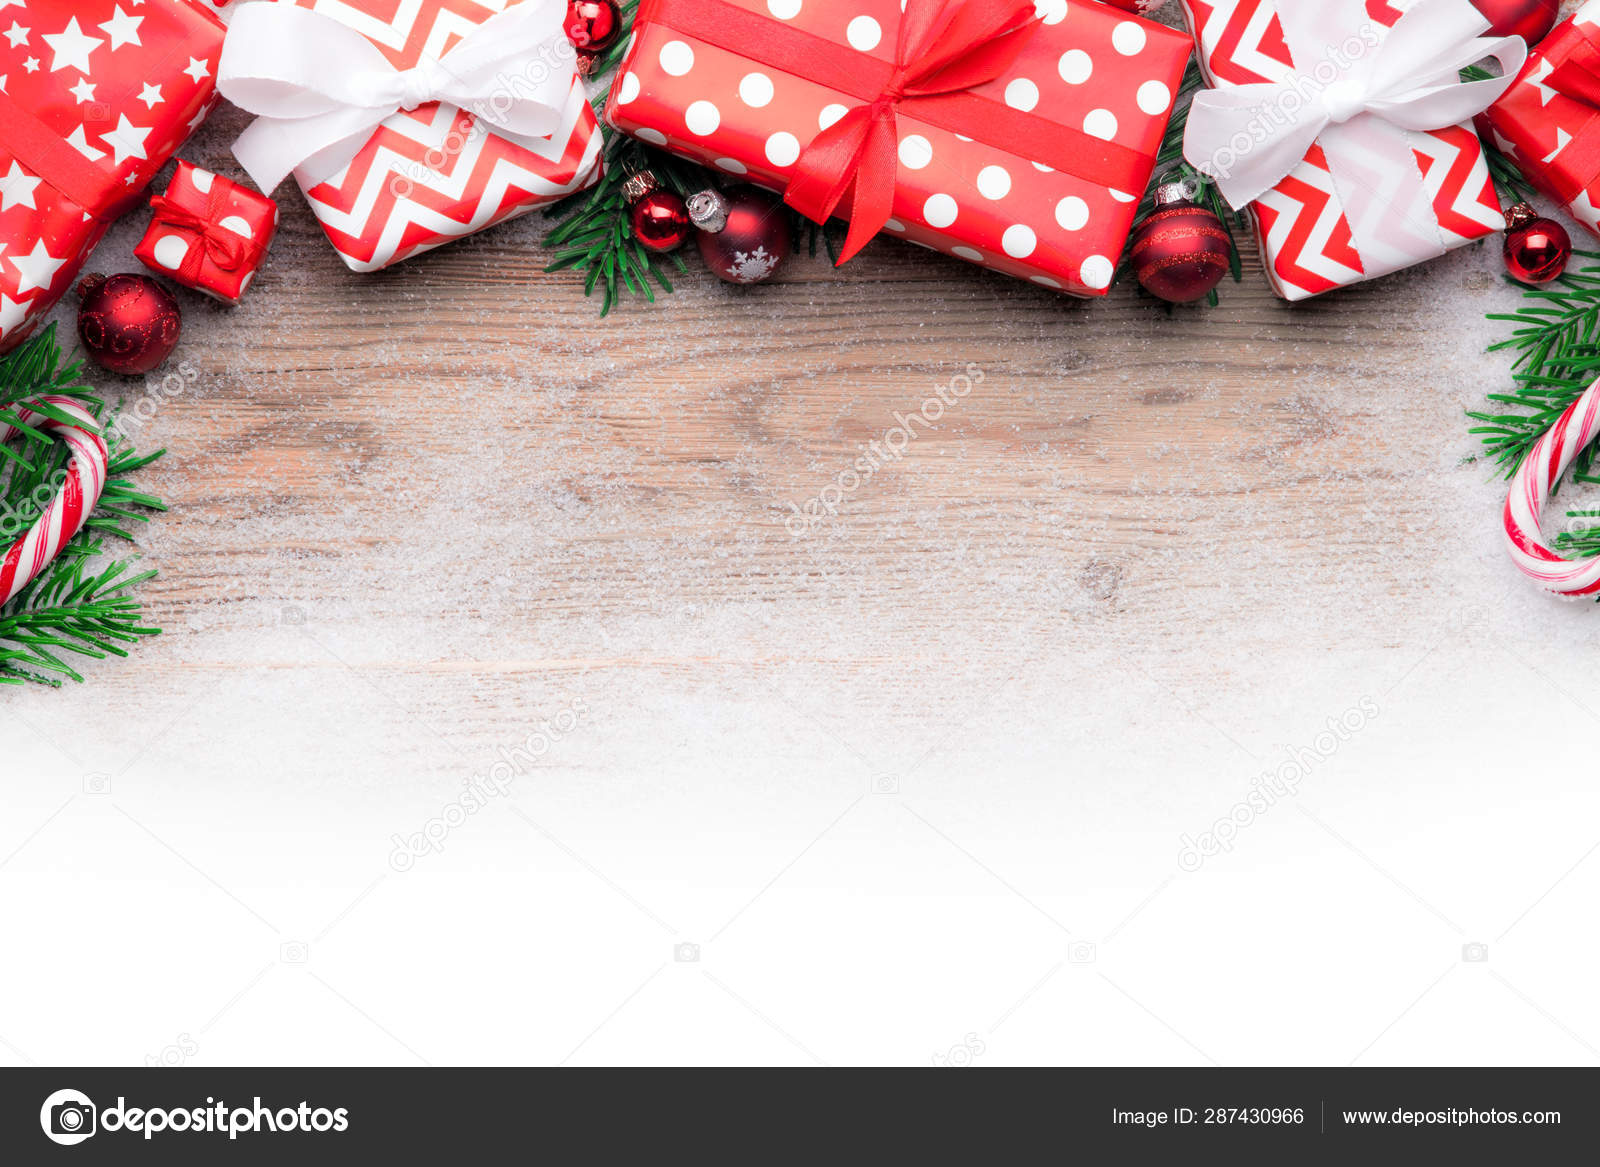 Merry Christmas Card Template Copy Space Stock Photo C Pixelliebe 287430966